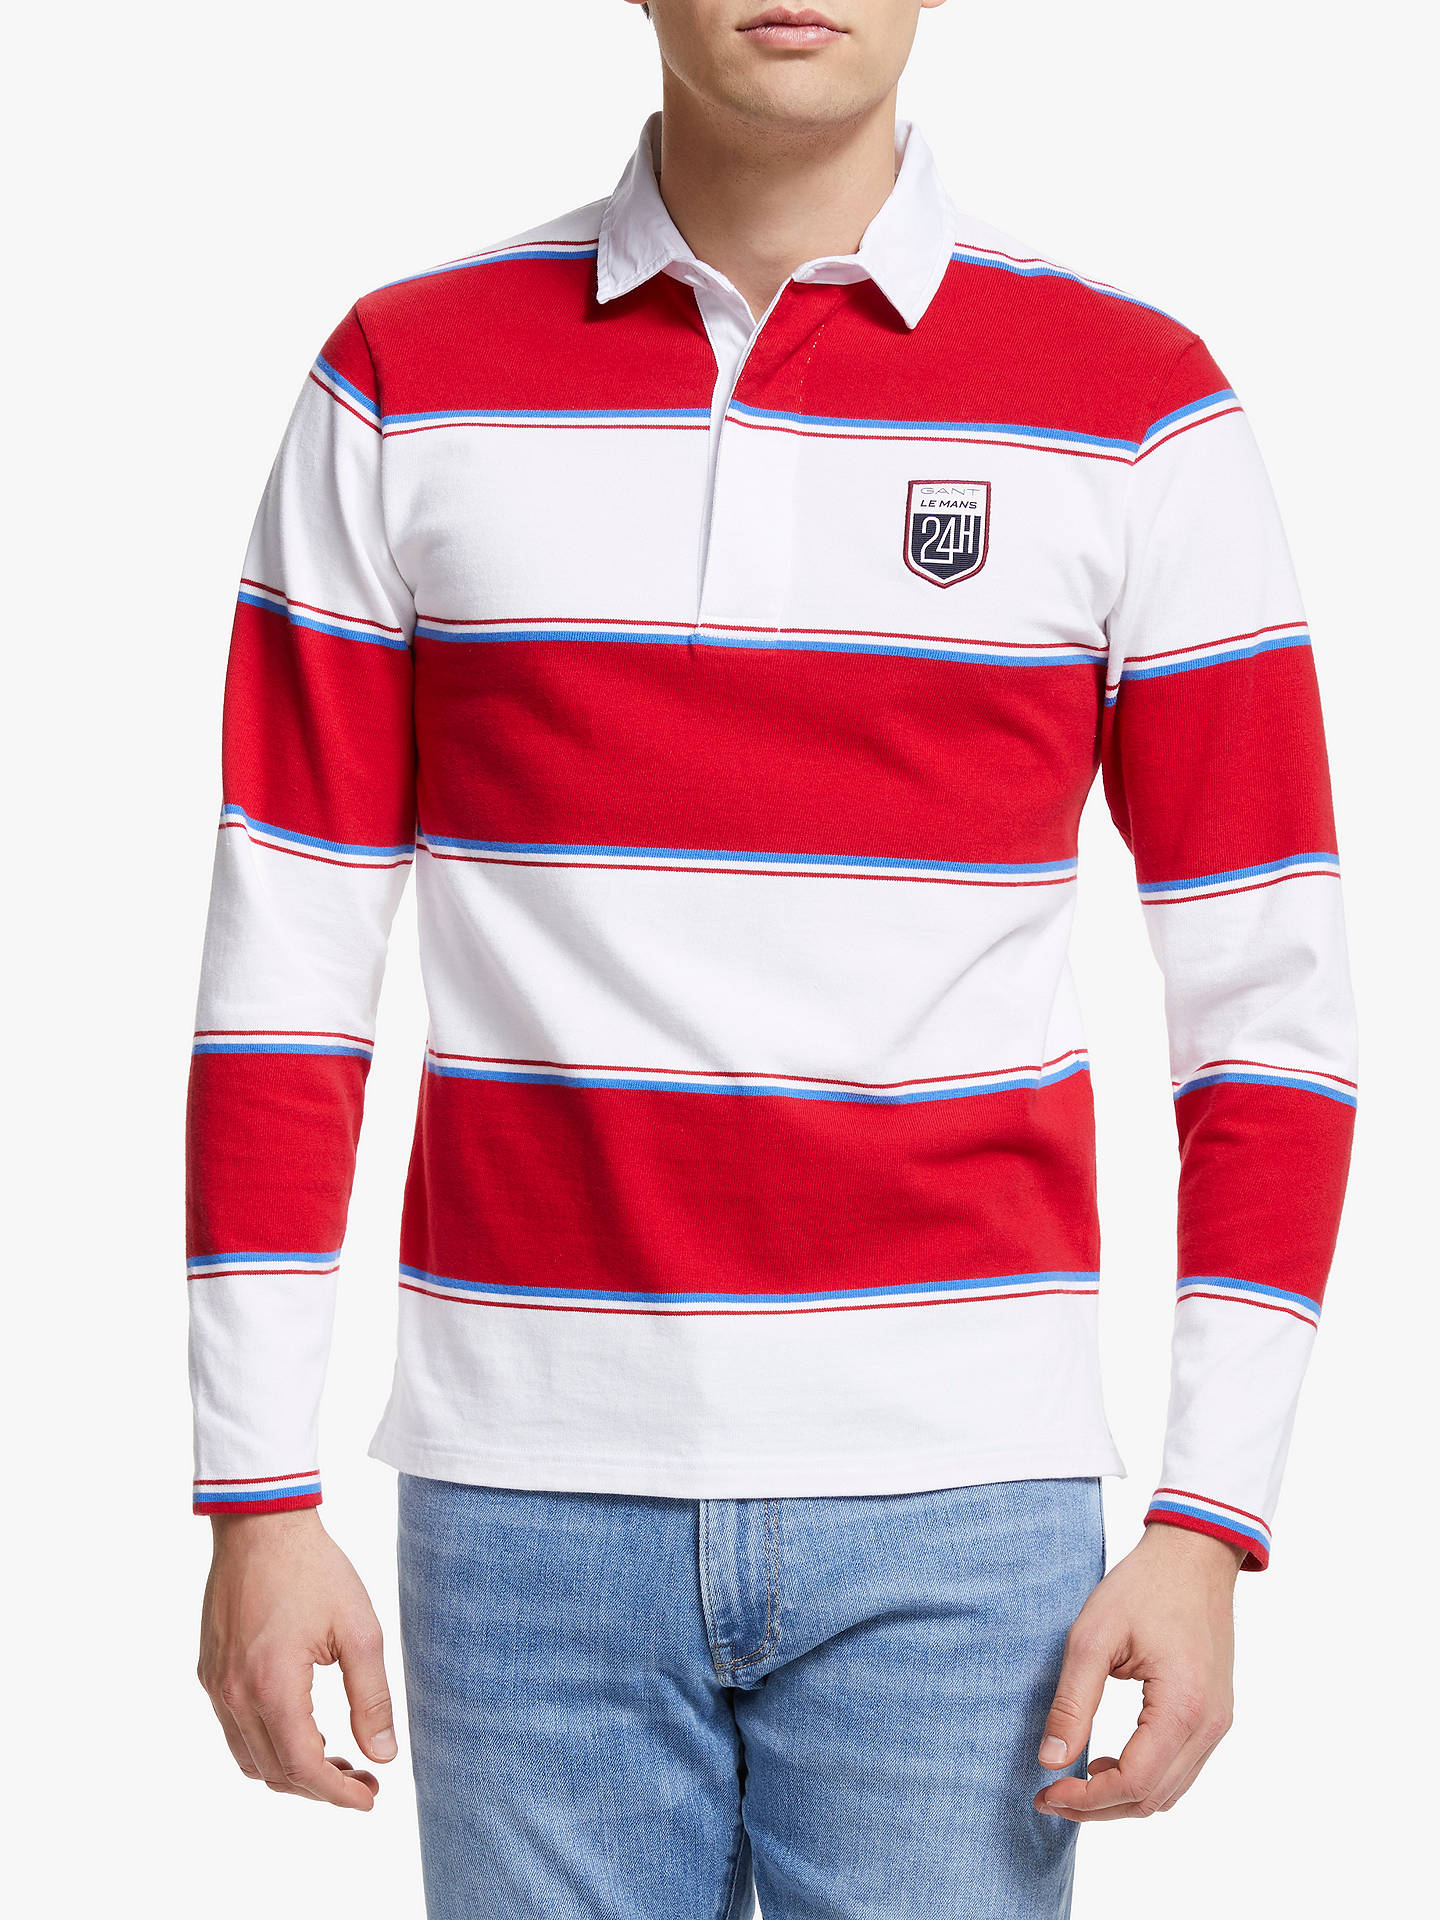 5357c6668b1 Buy GANT Le Mans Long Sleeve Striped Polo Shirt, White/Red, XL Online ...